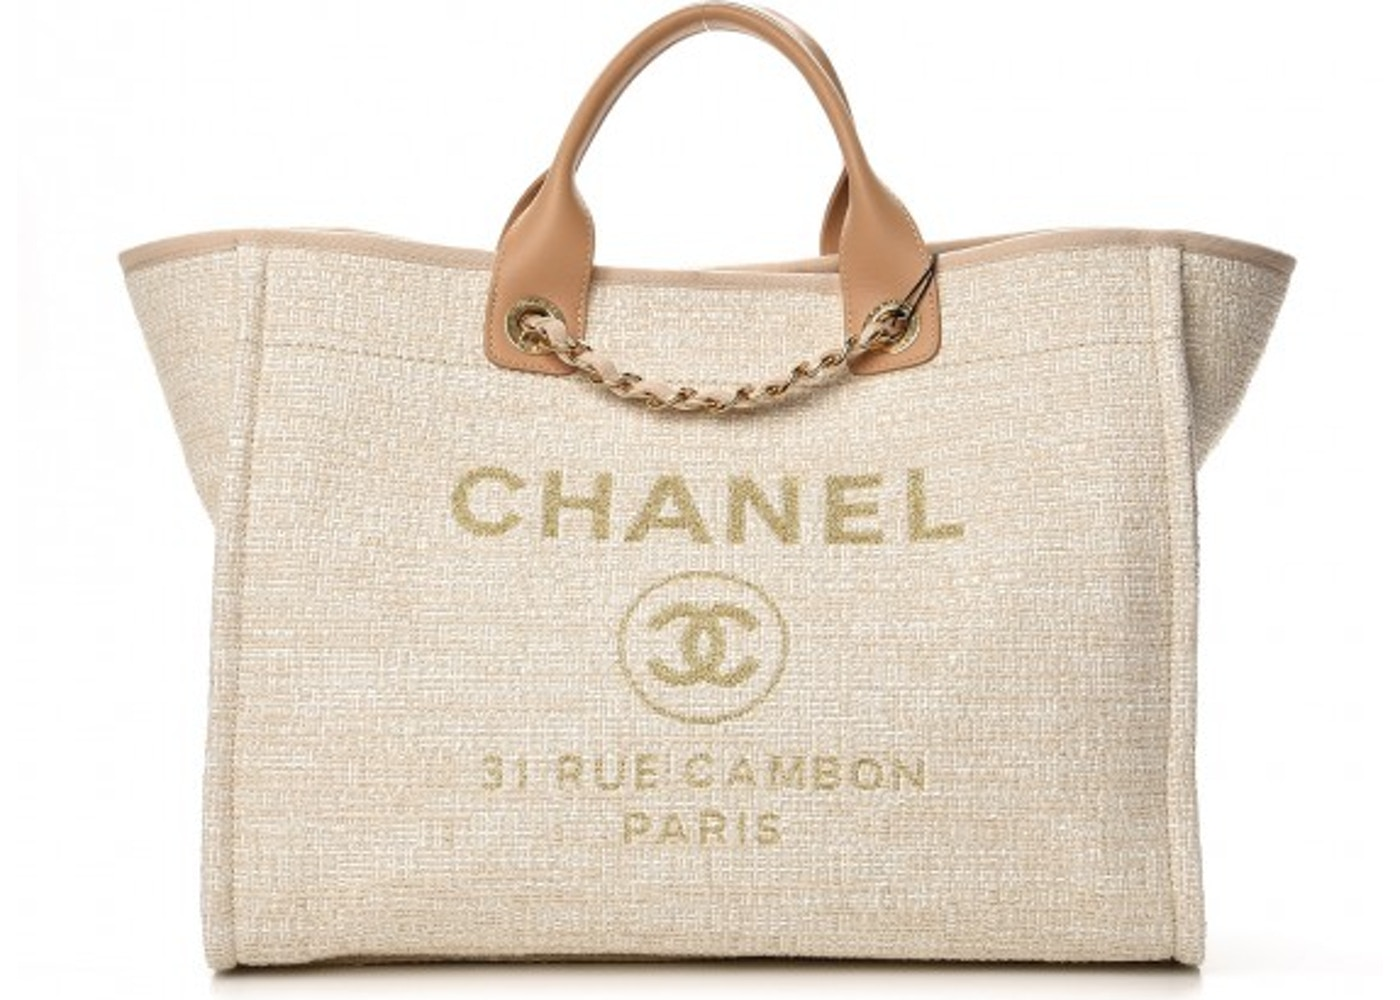 fa0dd7af7796 Chanel Deauville Tote Large Light Beige. Large Light Beige